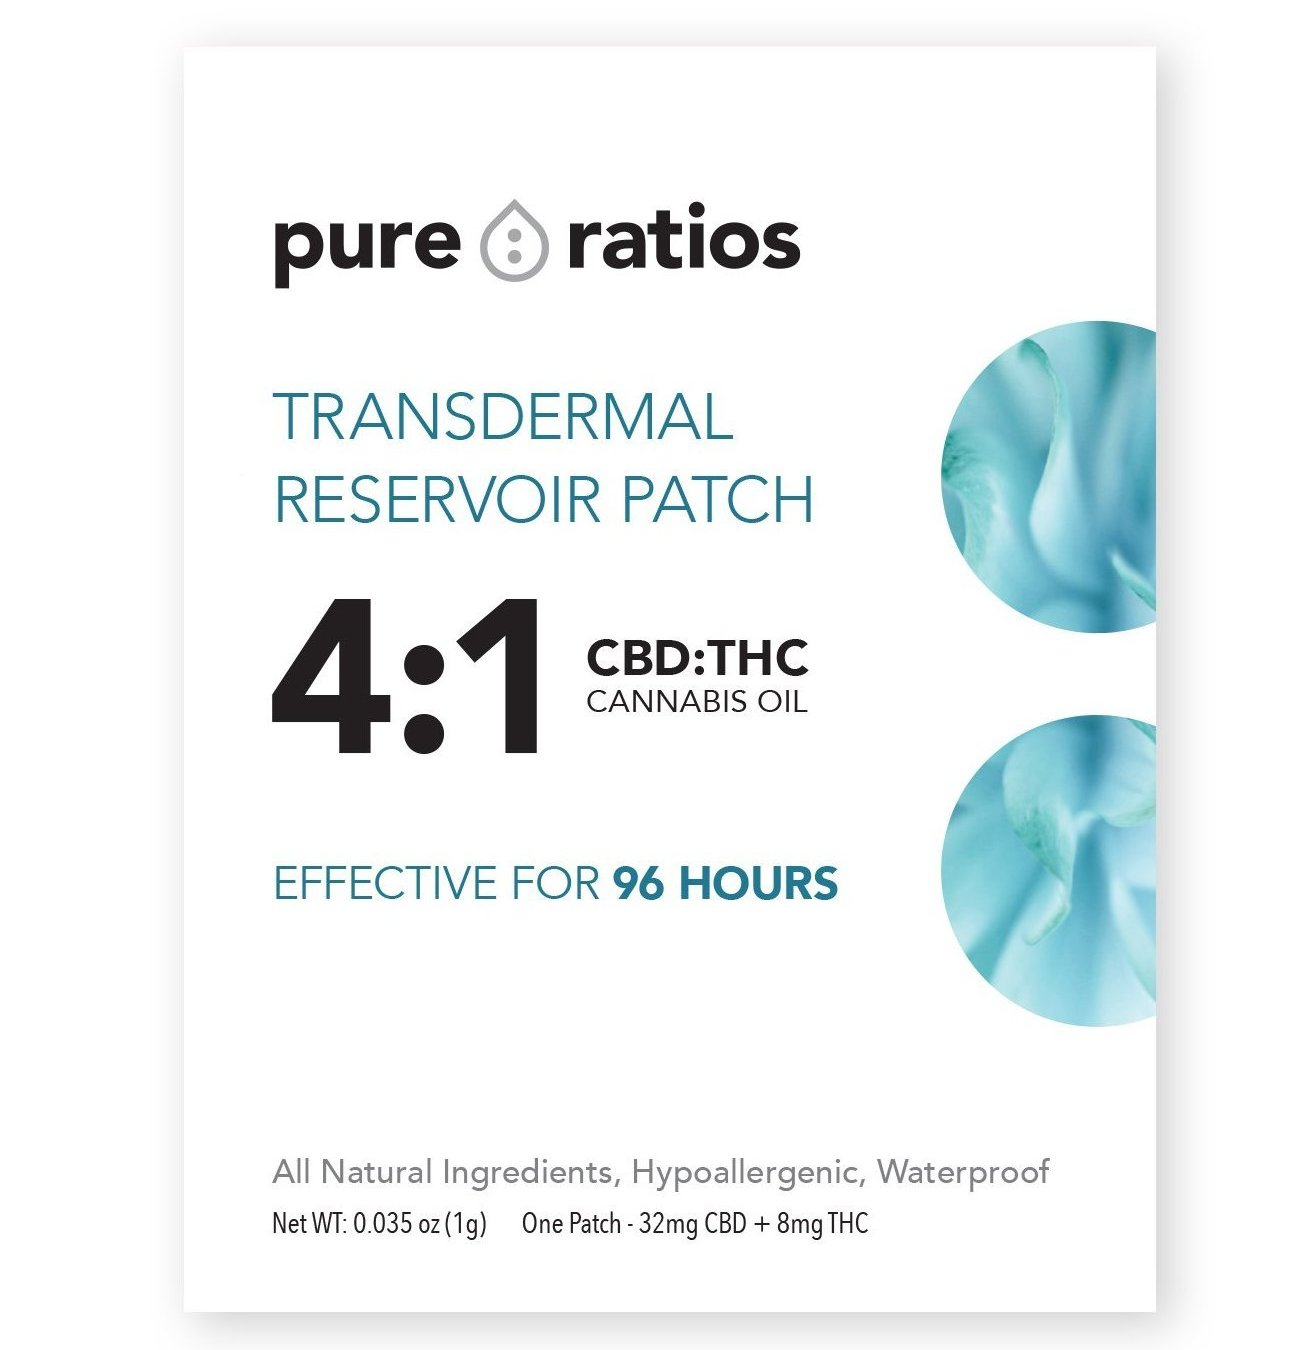 Transdermal Reservoir Patch - 4:1 CBD:THC